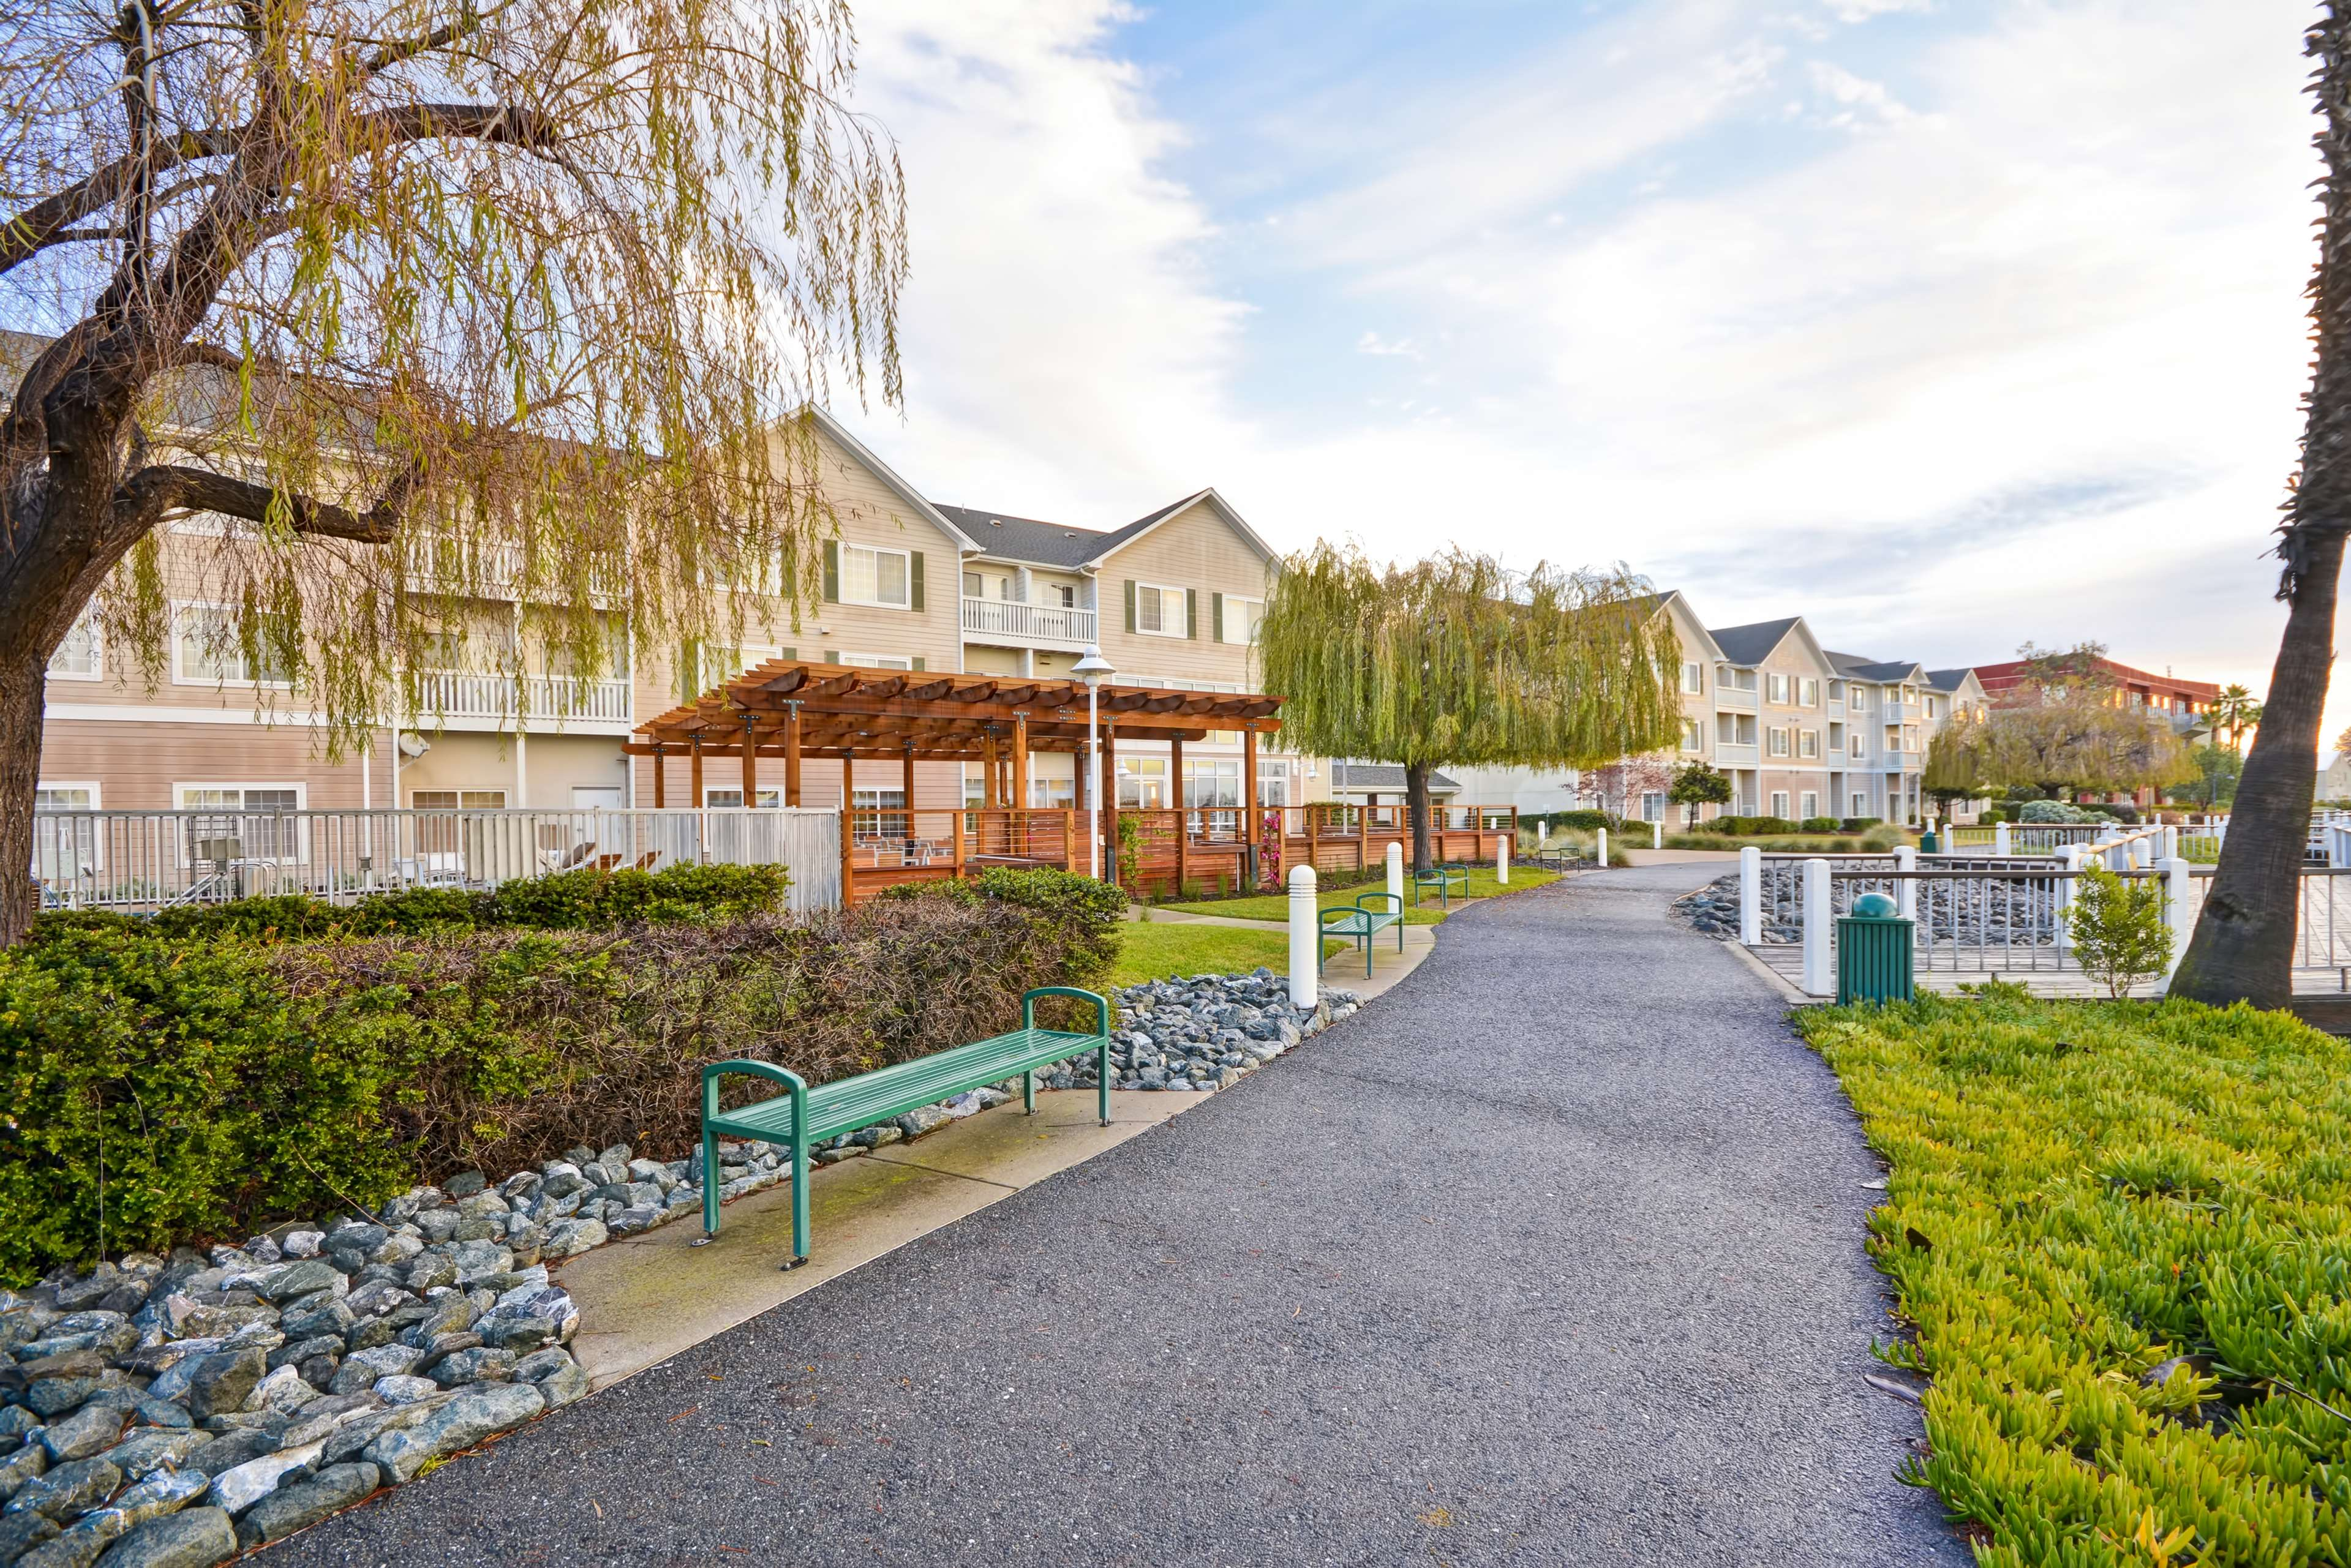 Homewood Suites At The Waterfront: Homewood Suites By Hilton Oakland-Waterfront, Oakland